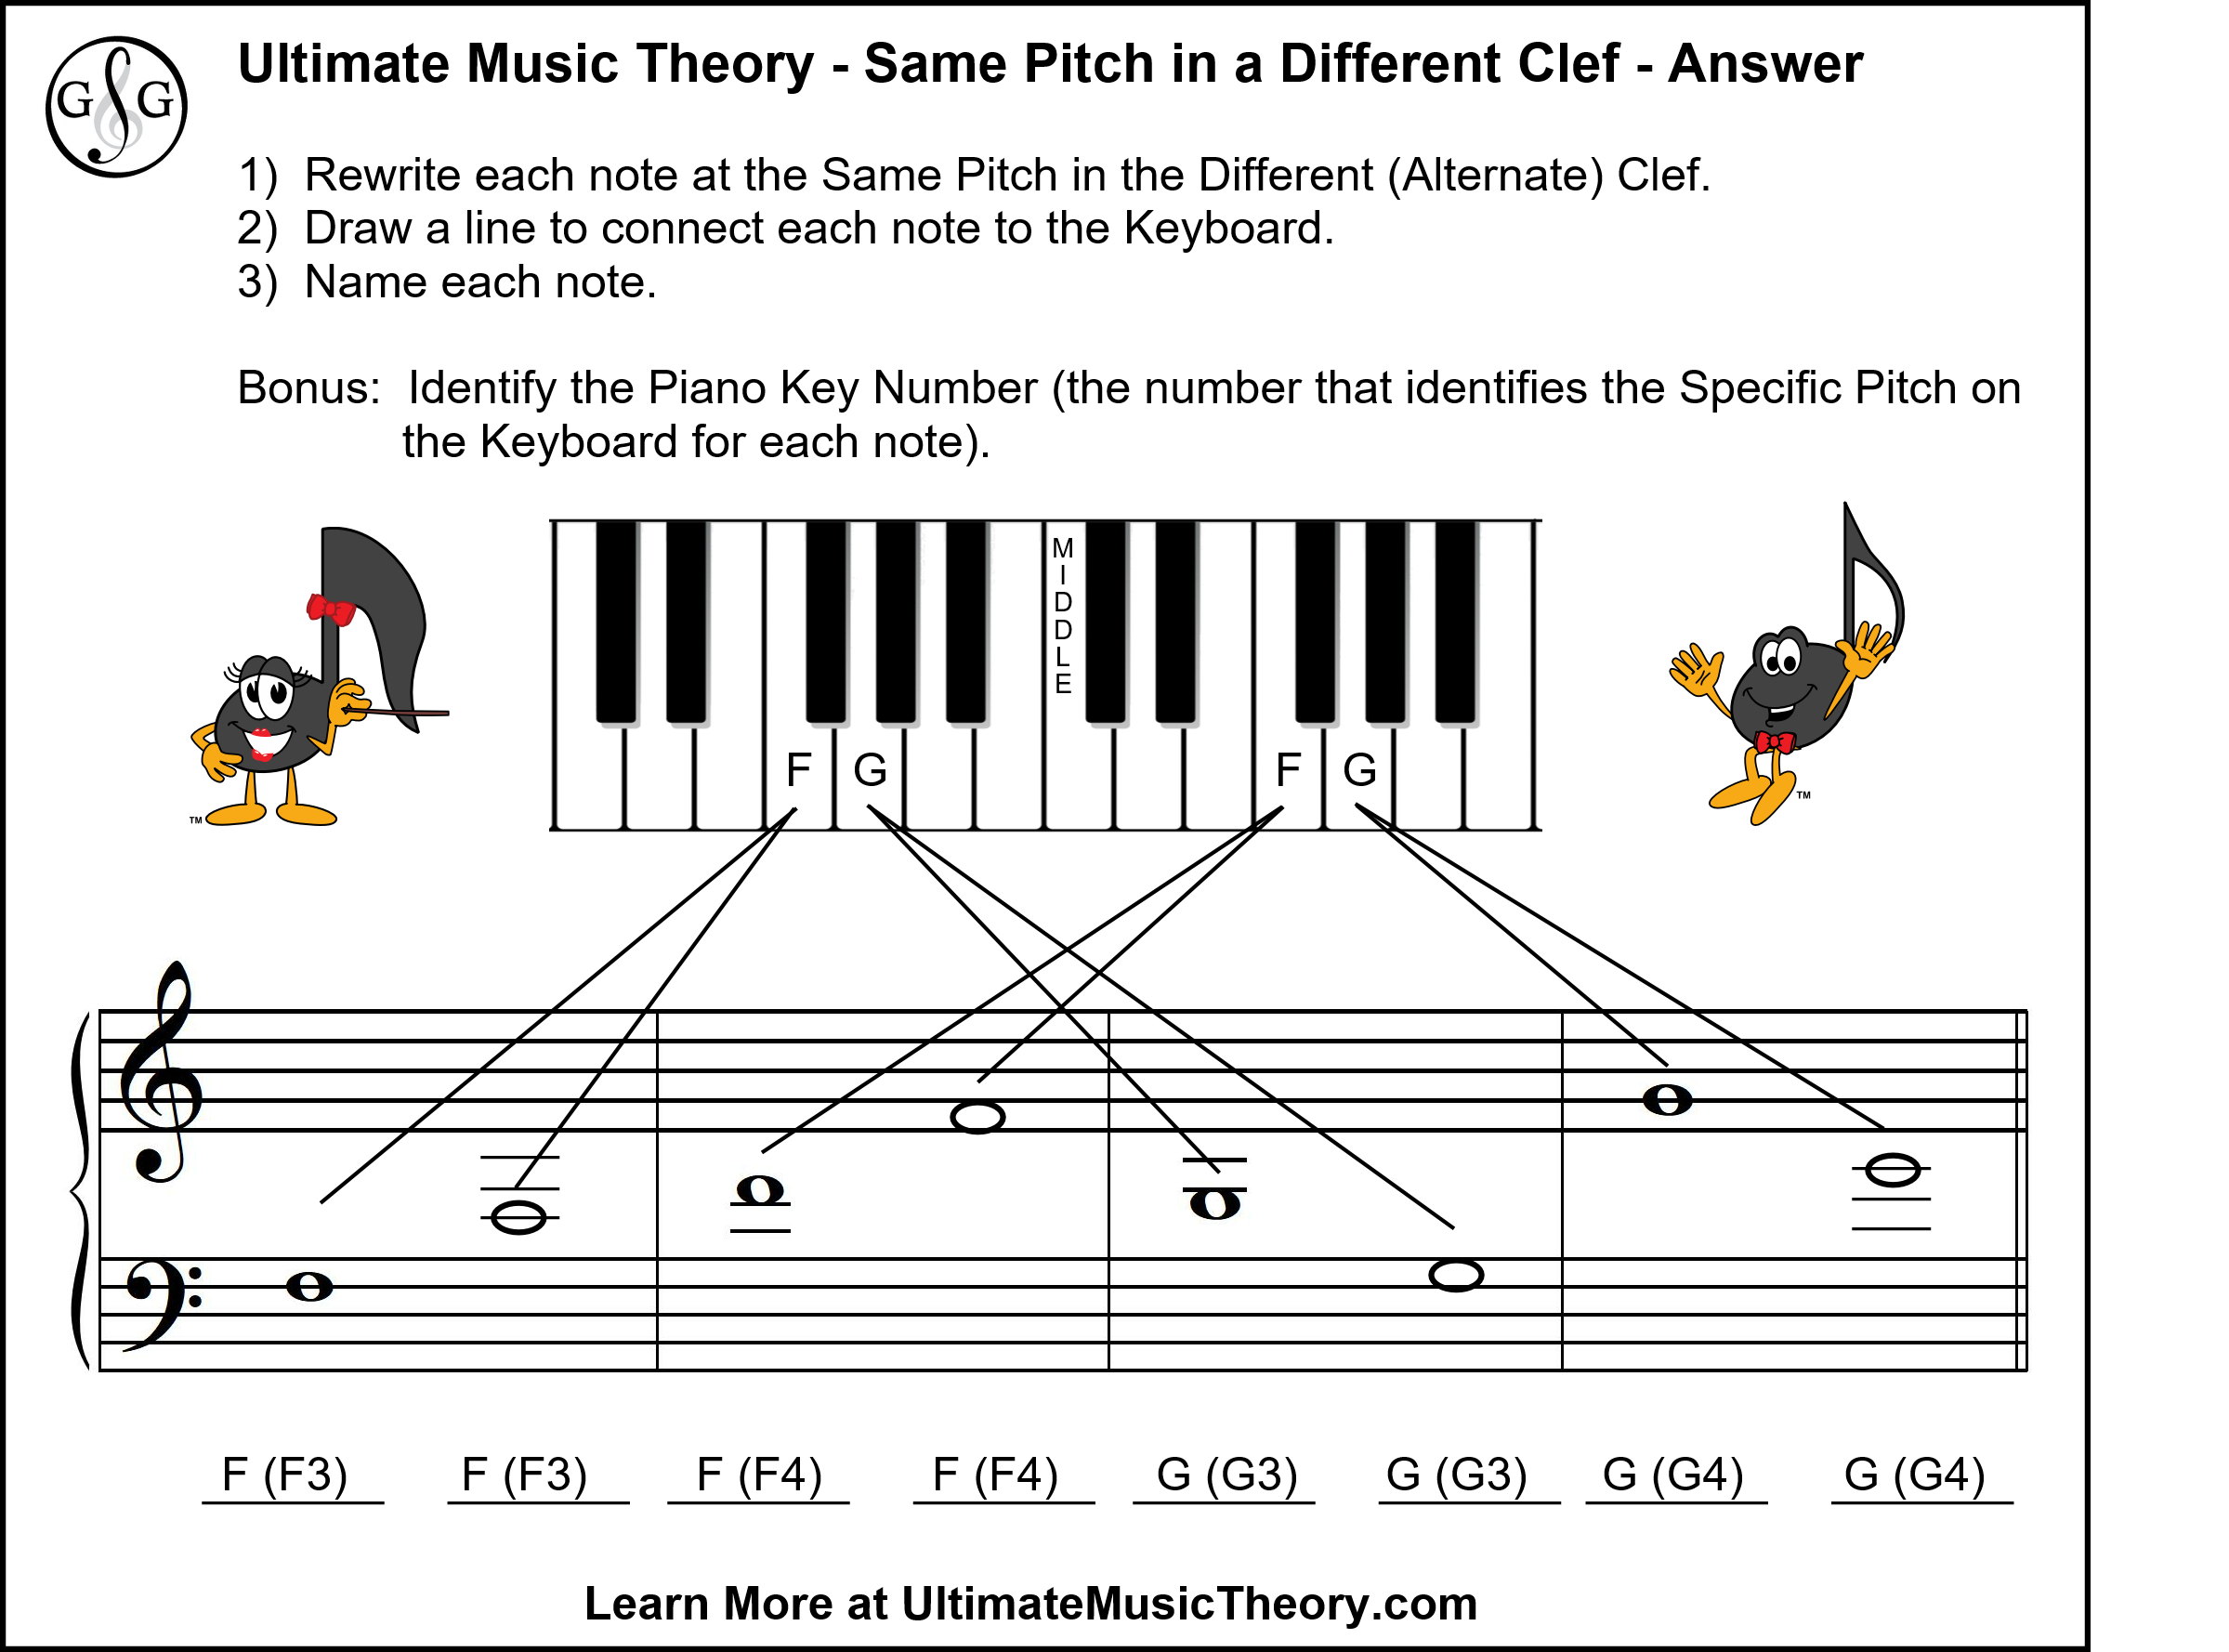 Ultimate Music Theory Same Pitch in a Different Clef Pop Quiz Answers